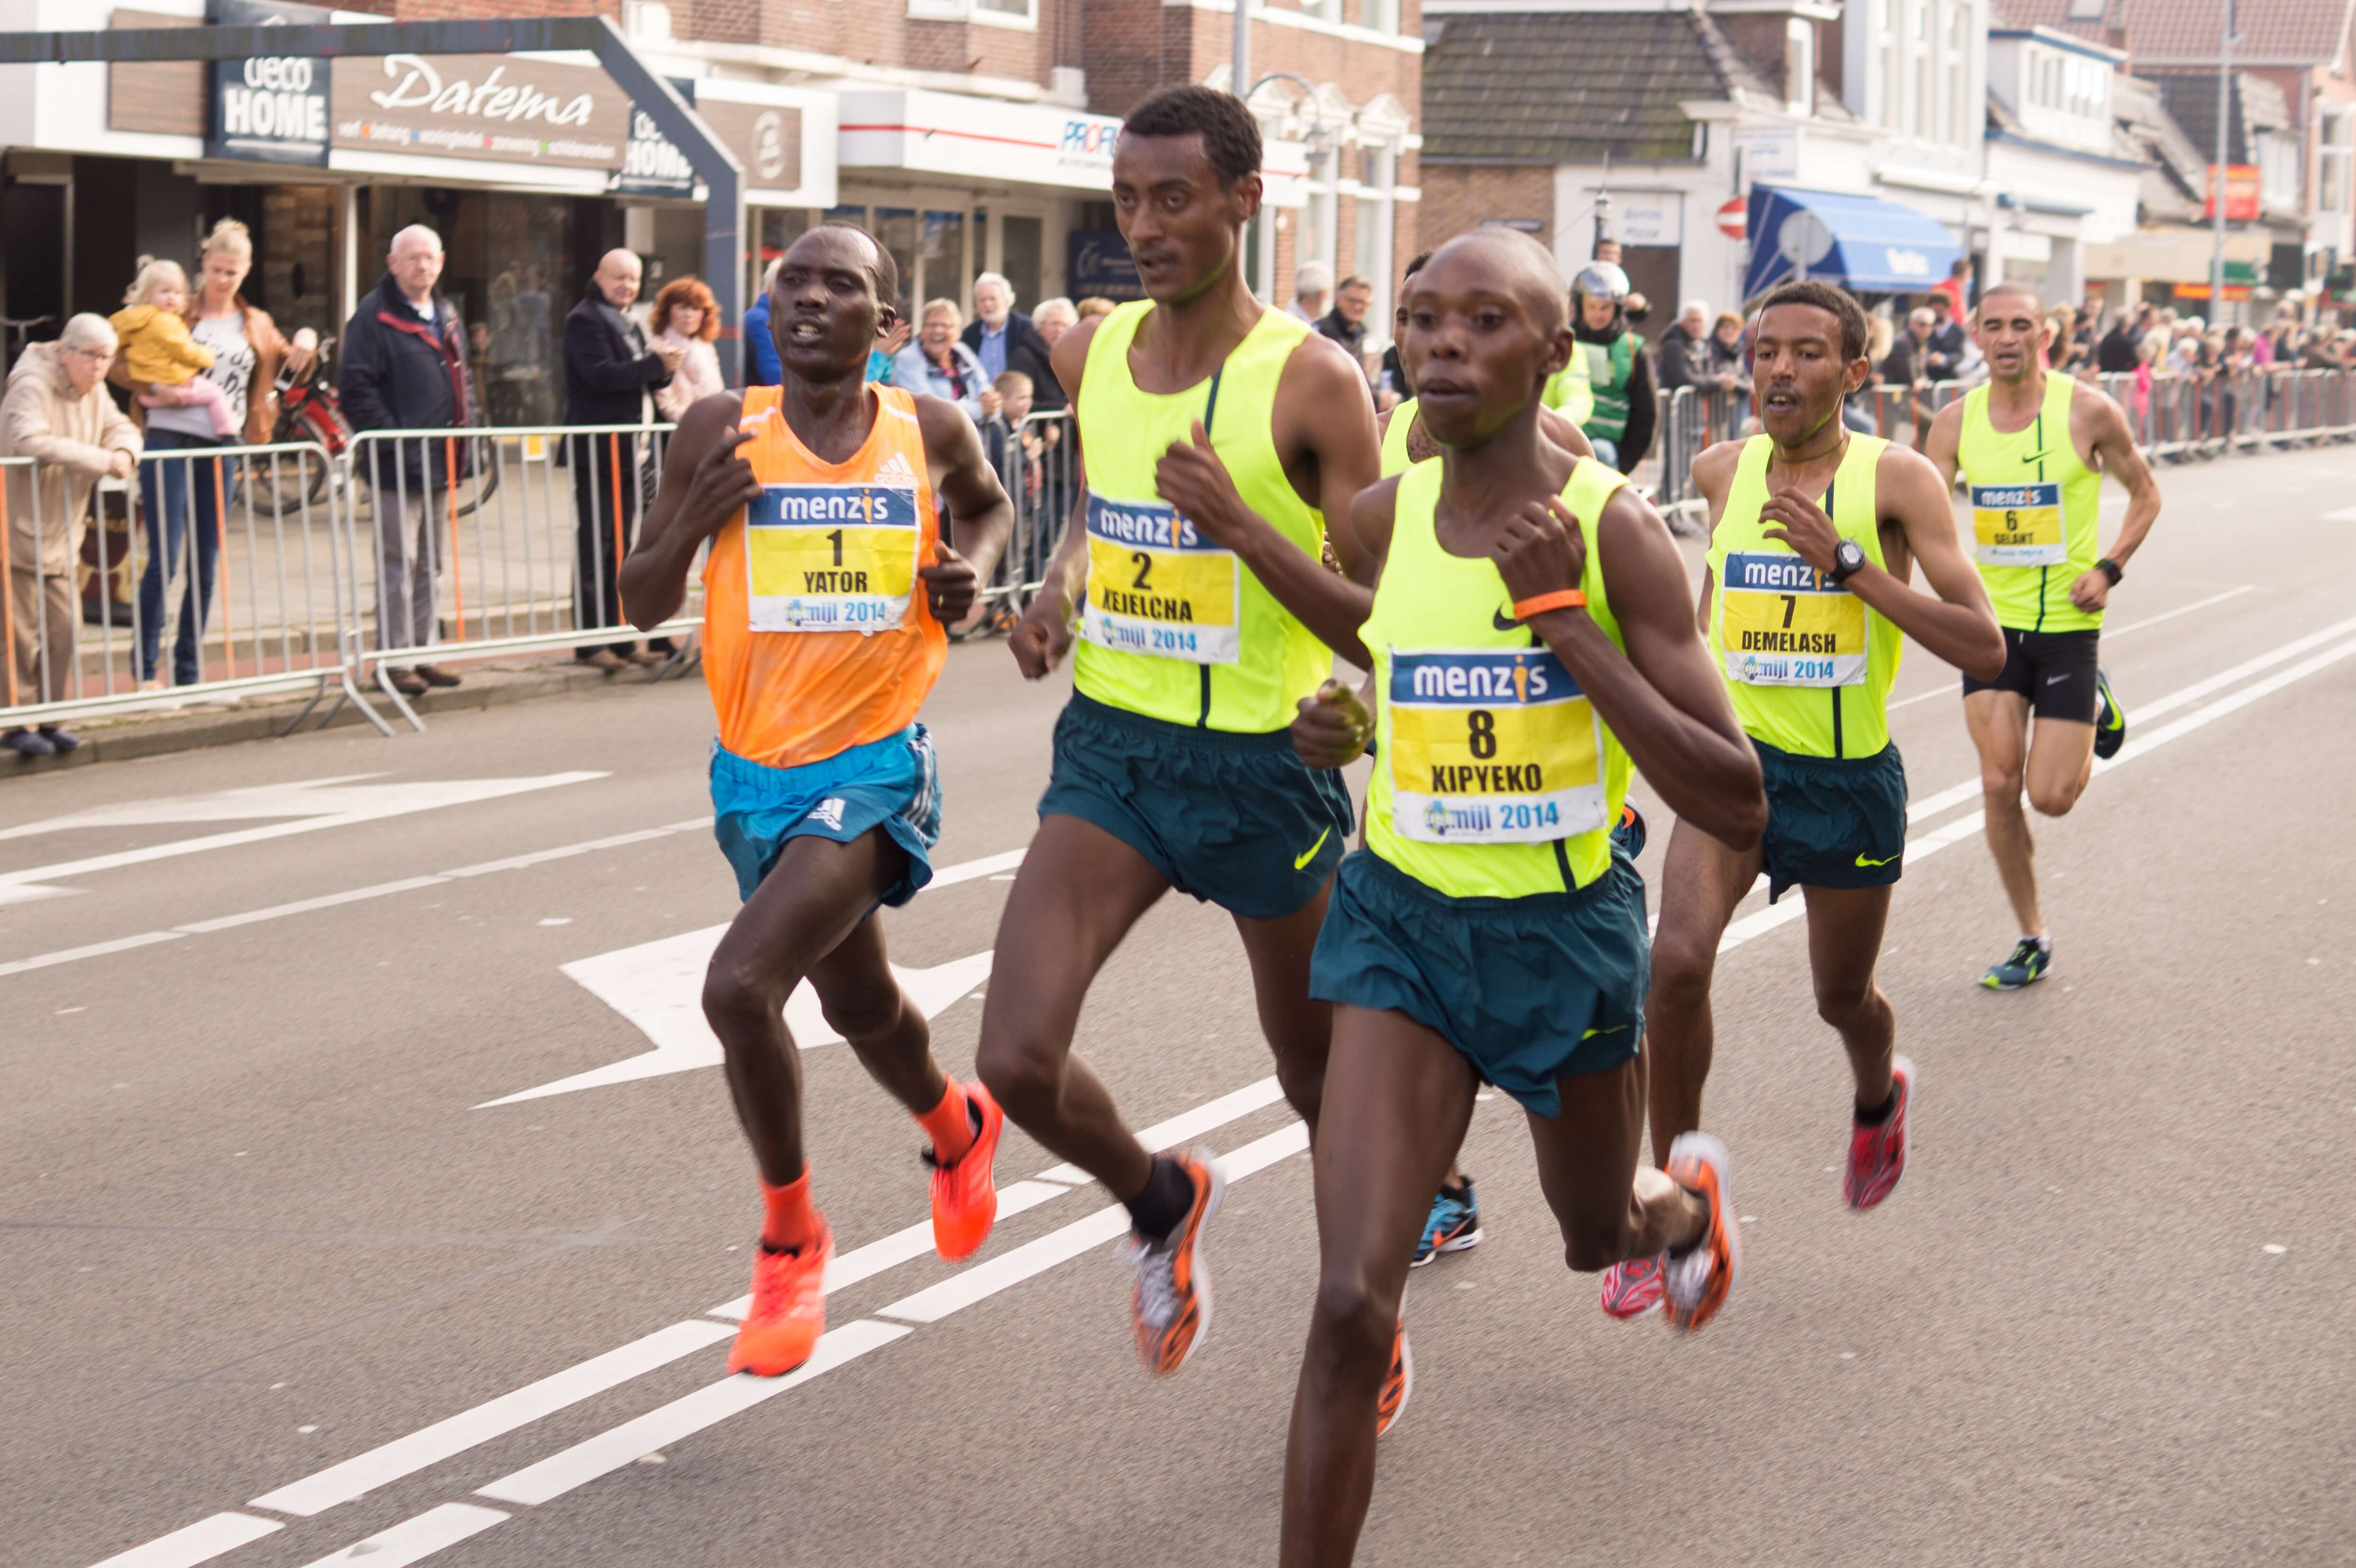 Marathons runners are wearing silicone wristbands.